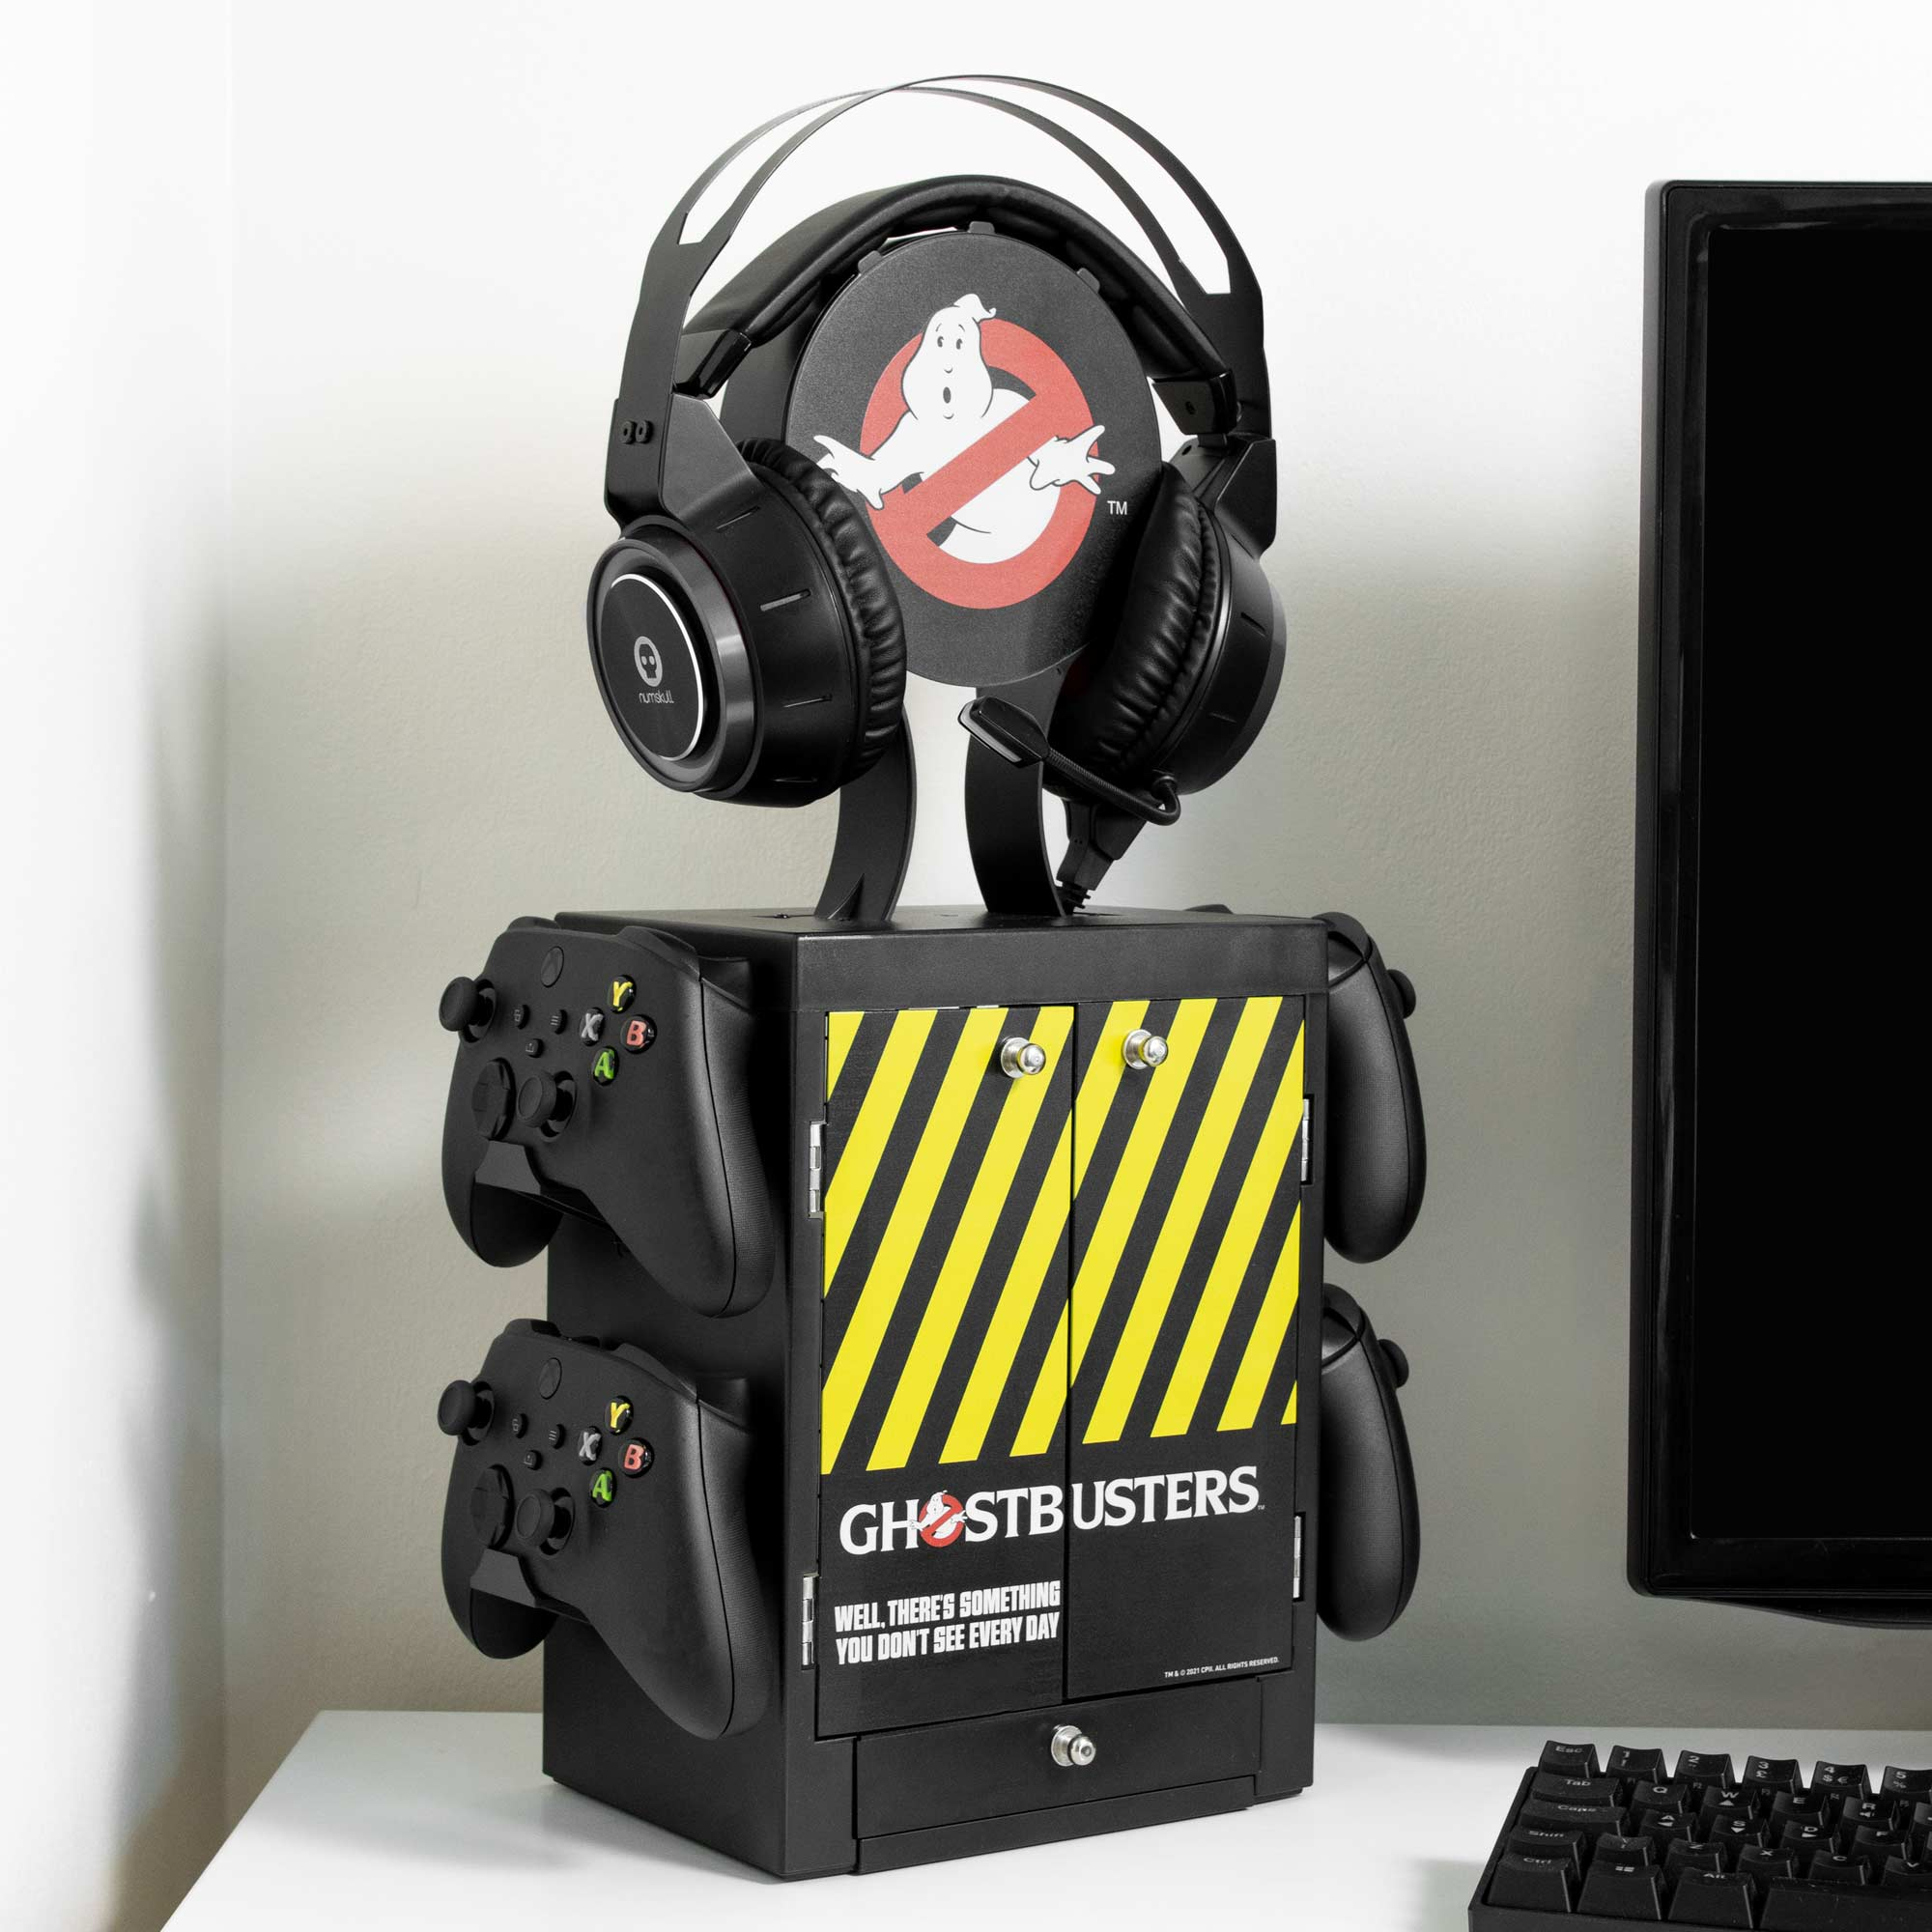 Official Ghostbusters Gaming Locker